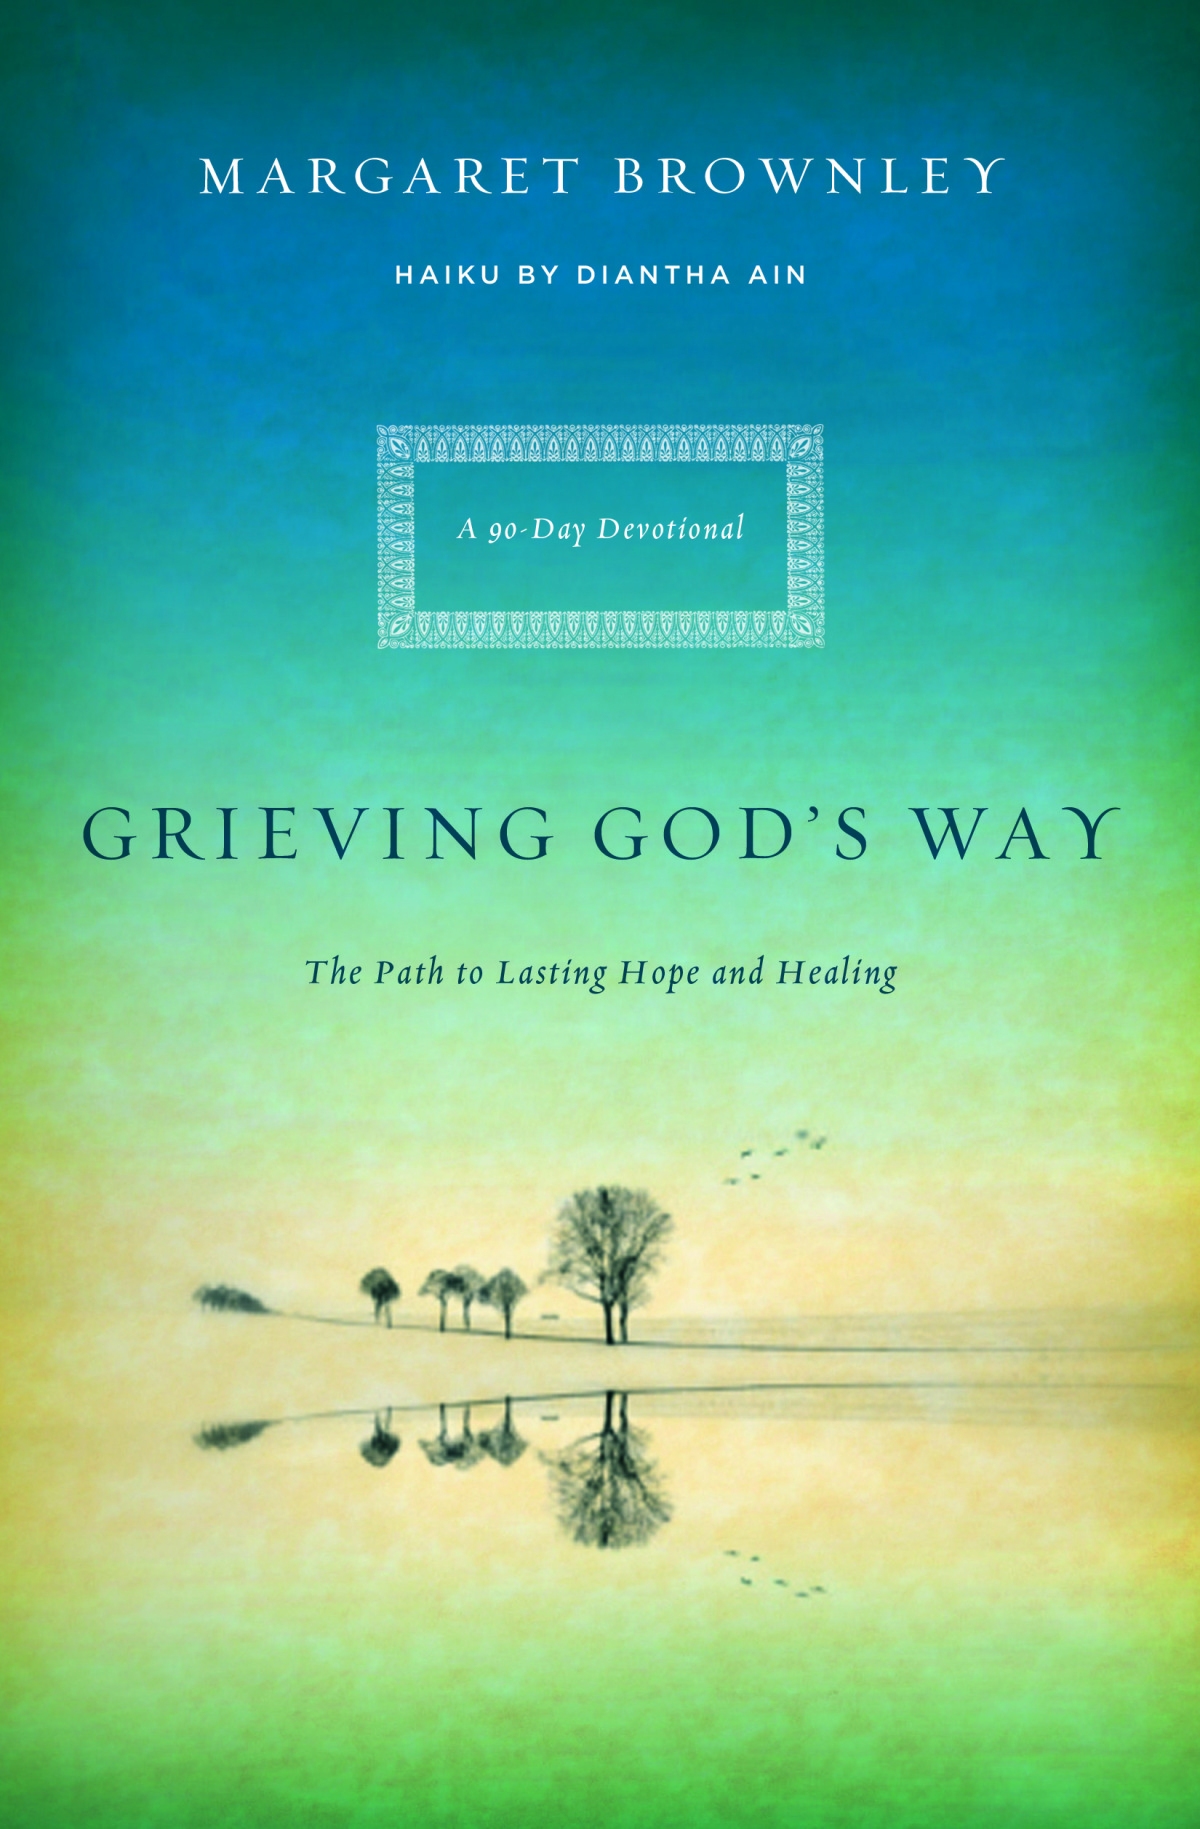 Grieving God's Way: The Lasting Path to Hope and Healing